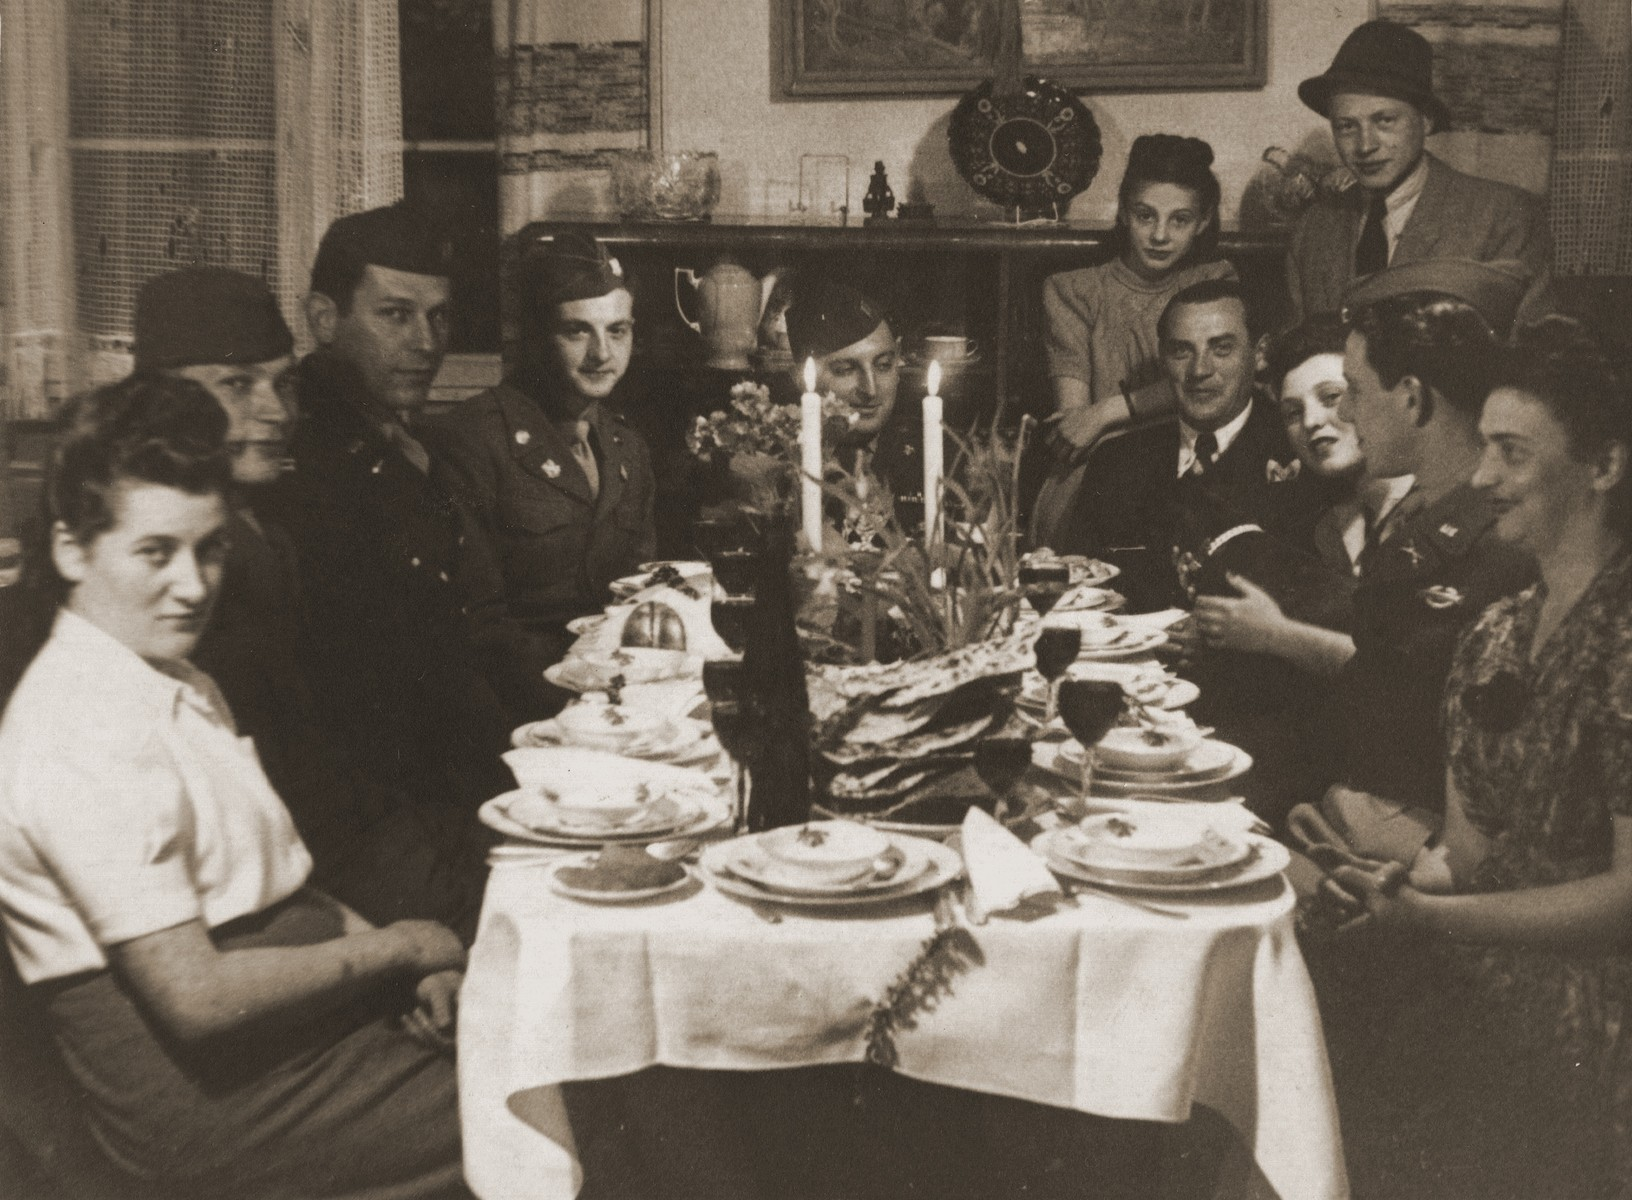 Hinda Chilewicz and Welek Luksenburg attend a Passover seder at the home of Mary Ganzweich in Bayreuth, 1946.   Those pictured include Hinda Luksenburg (far left), Captain Cooly (a CIA member who was assisting the Jewish DPs in Bayreuth), Halinka Merin (the daughter of Mary Gauzweich and Moniek Merin, former head of the Sosnowiec Judenrat), Welek Luksenburg, Henia Szczesliva and Mary Ganzweich.